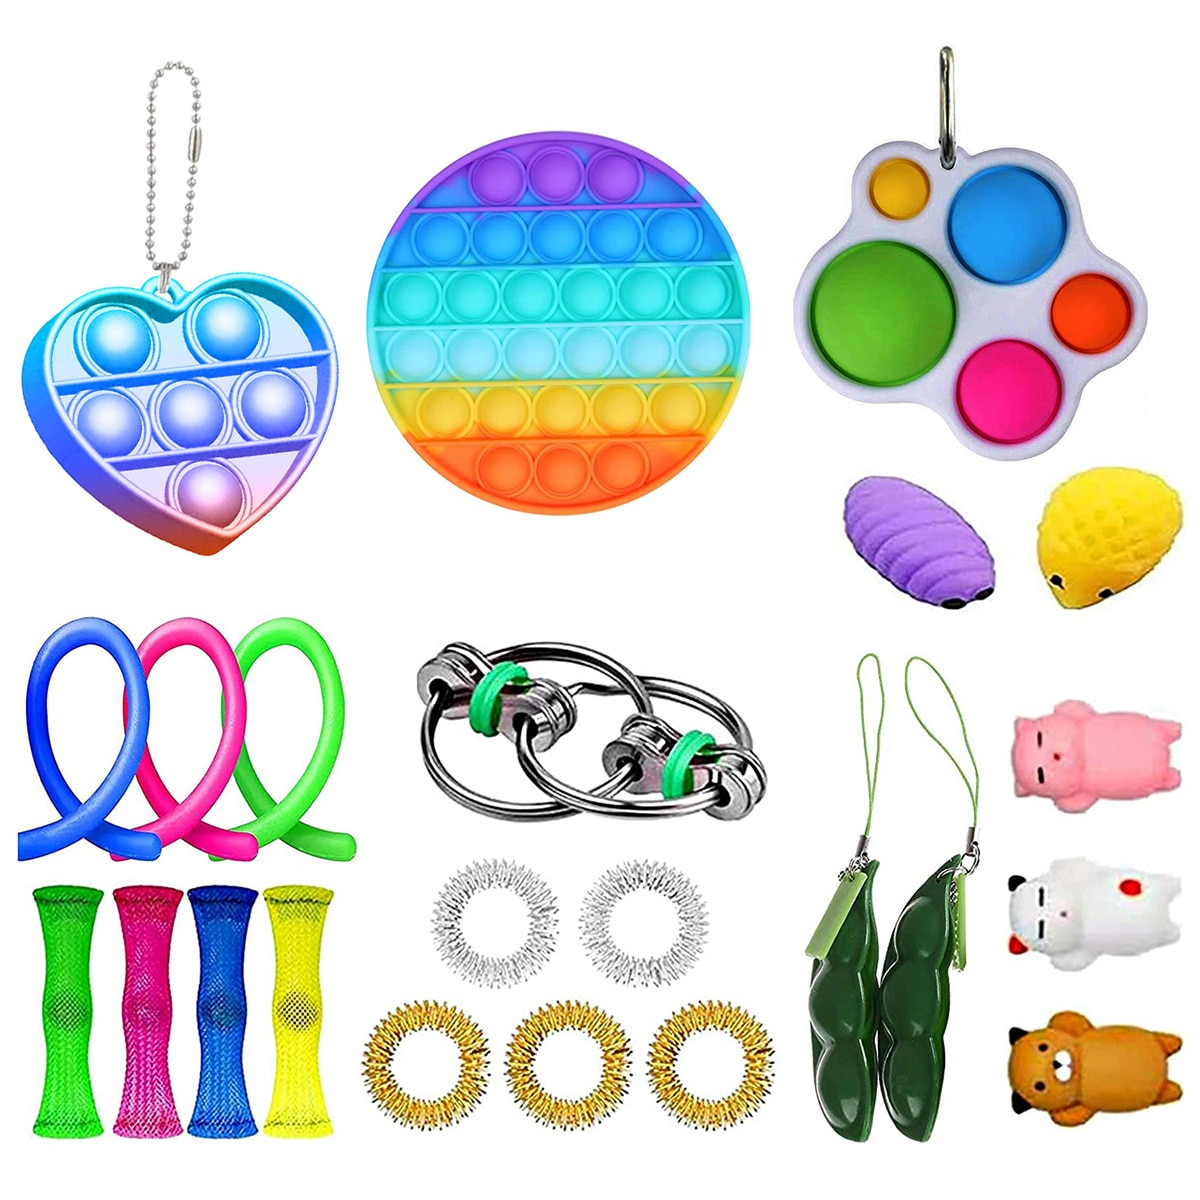 23PCS Fidget Sensory Toy Set Stress Relief Toys Autism Anxiety Relief Stress Pop Bubble Funny Toy For Kids Adults